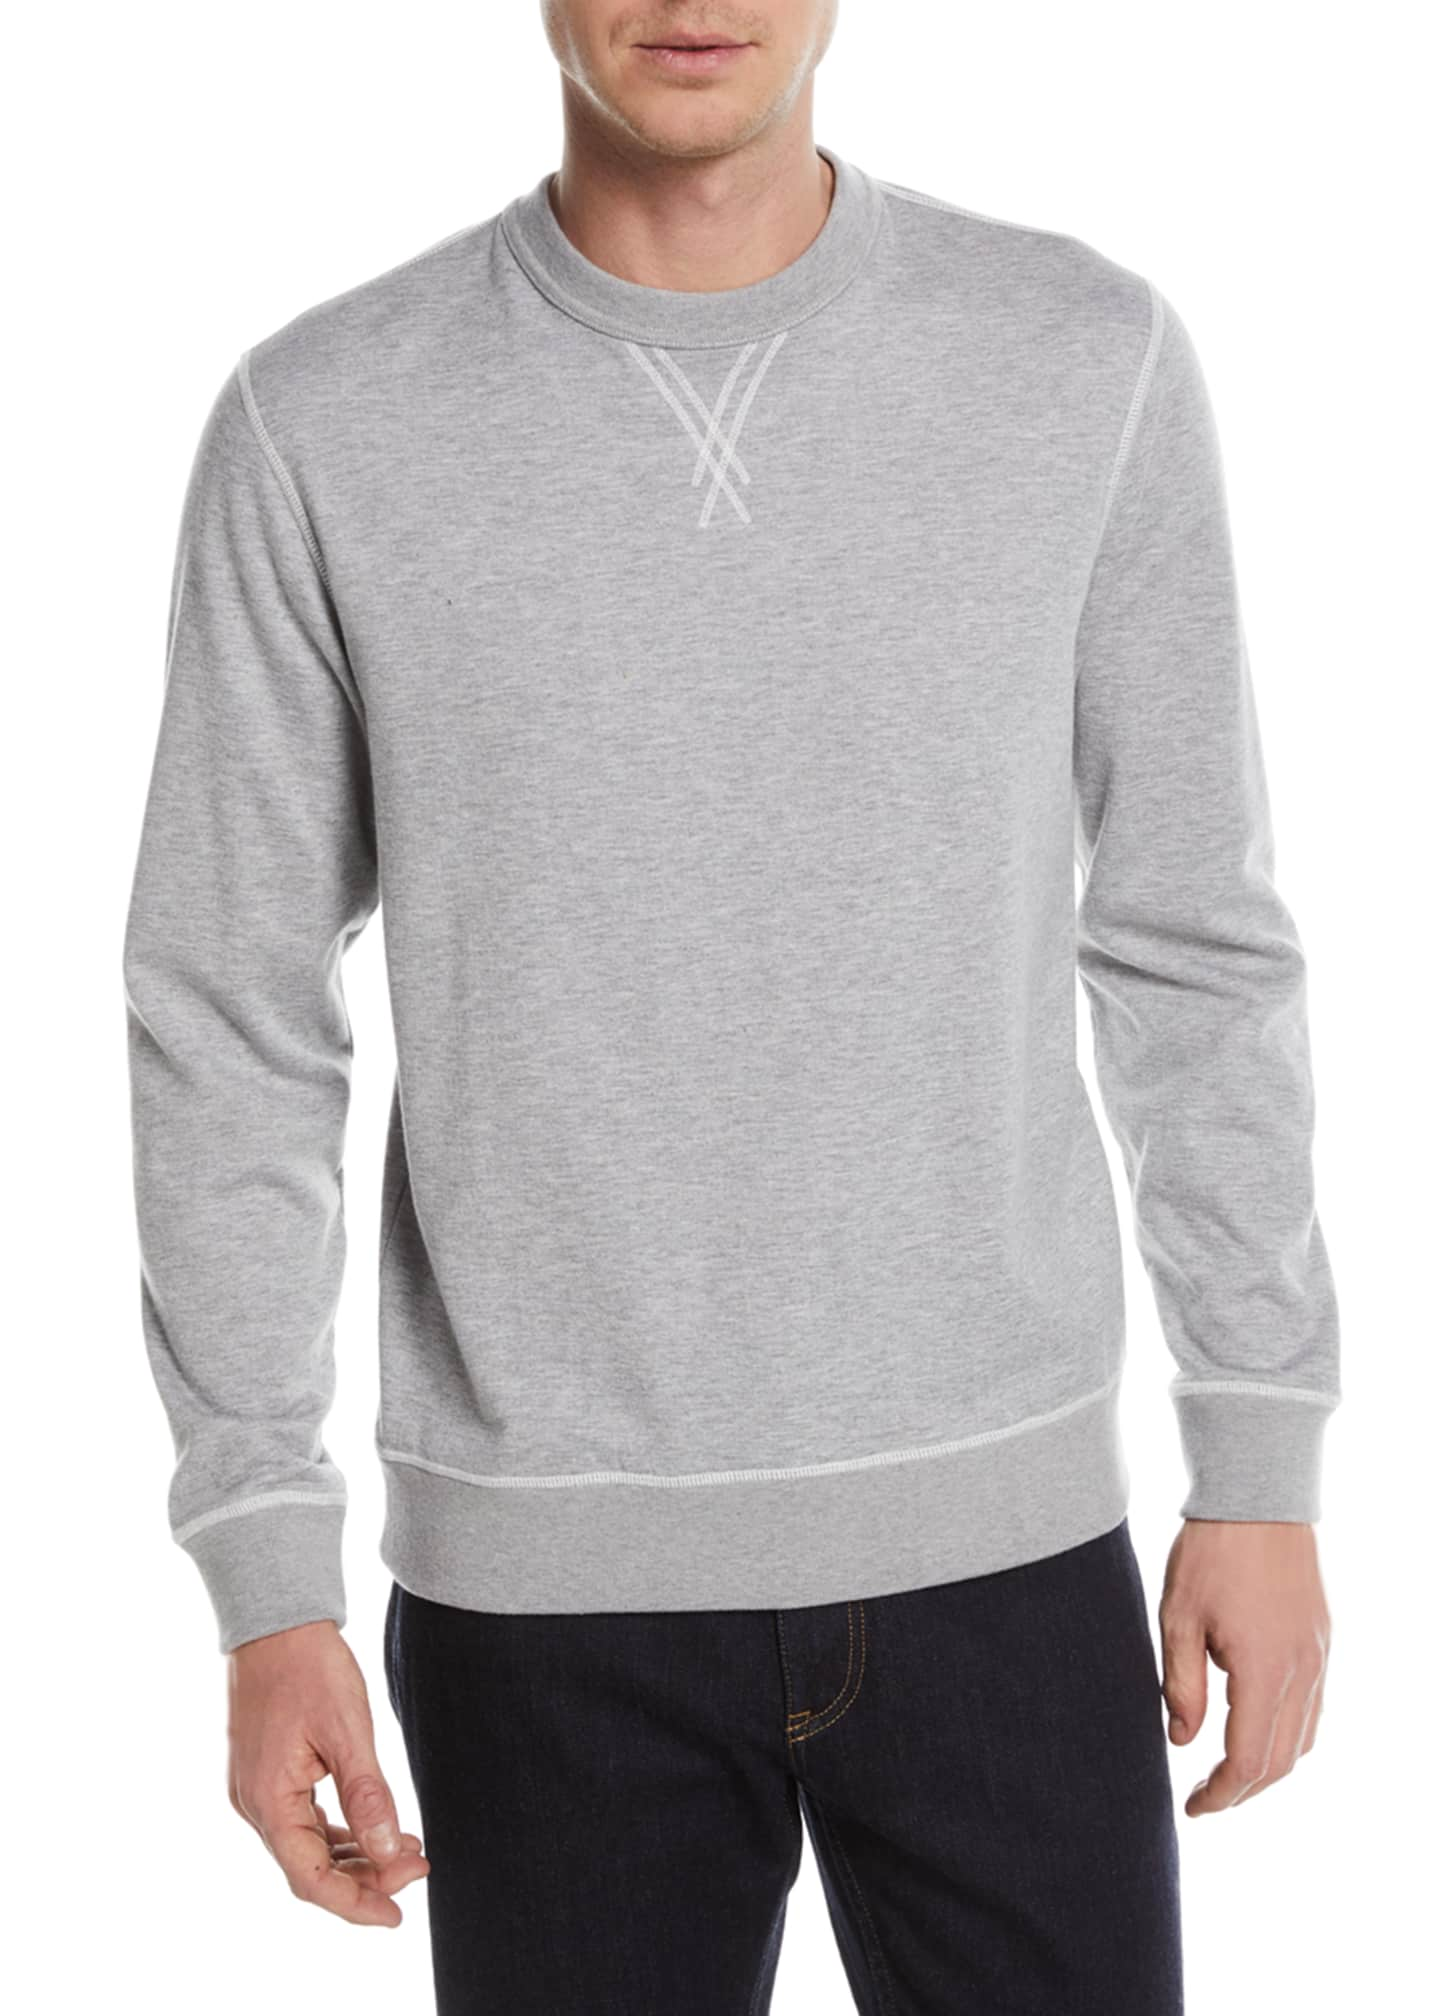 Ermenegildo Zegna Heathered Cotton/Cashmere Sweatshirt